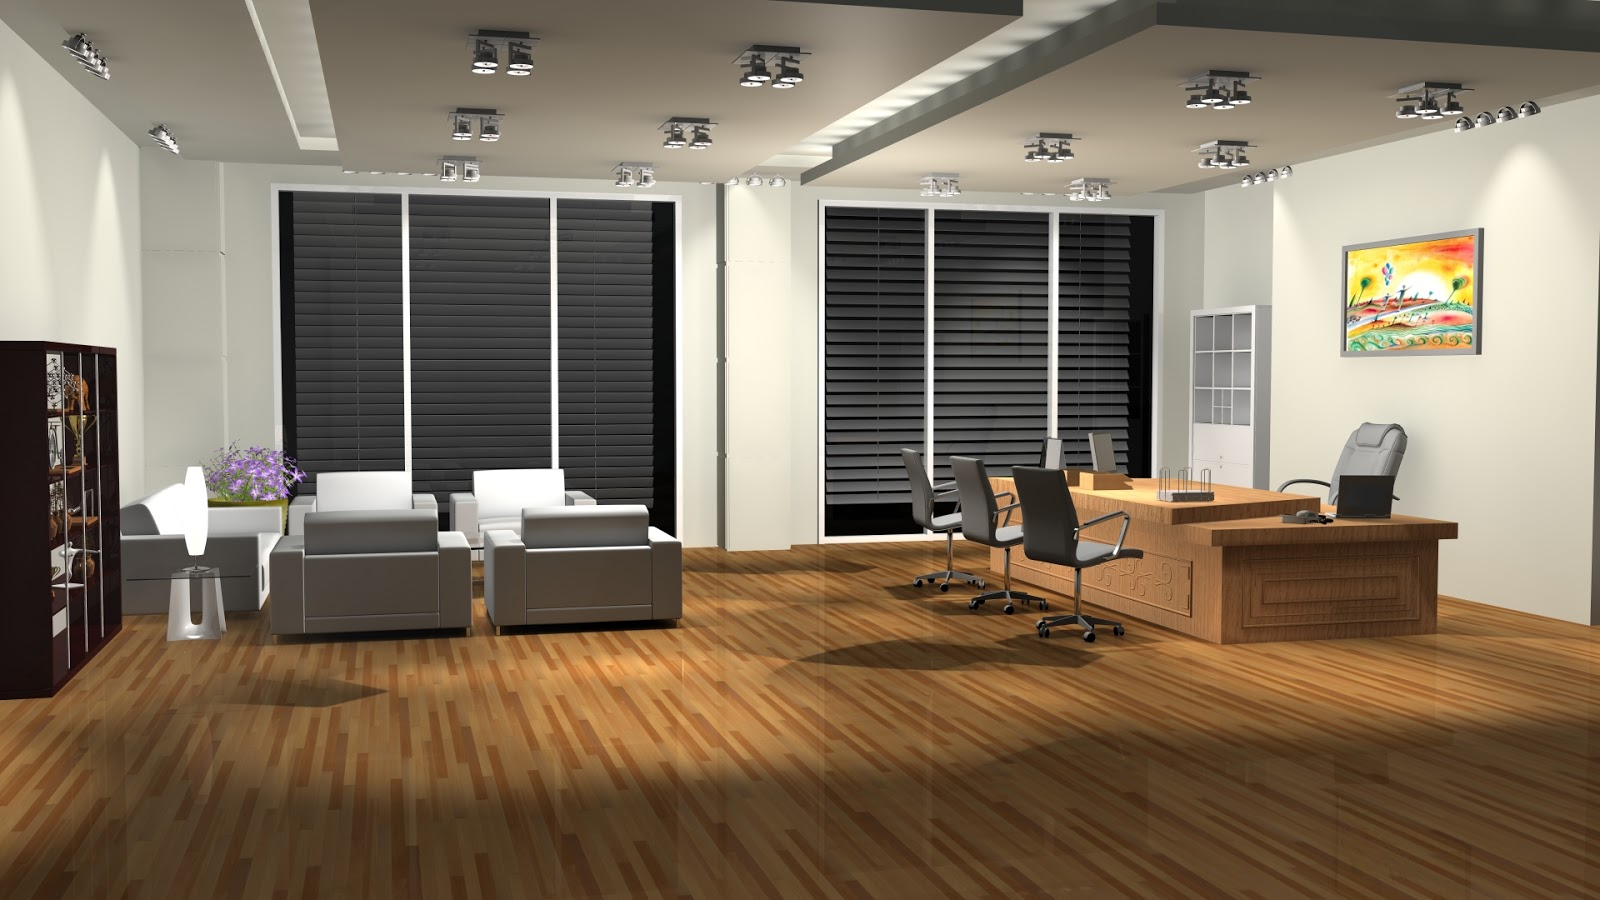 Sajid Designs Office Room 3d Interior Design 3ds Max: office design 3d